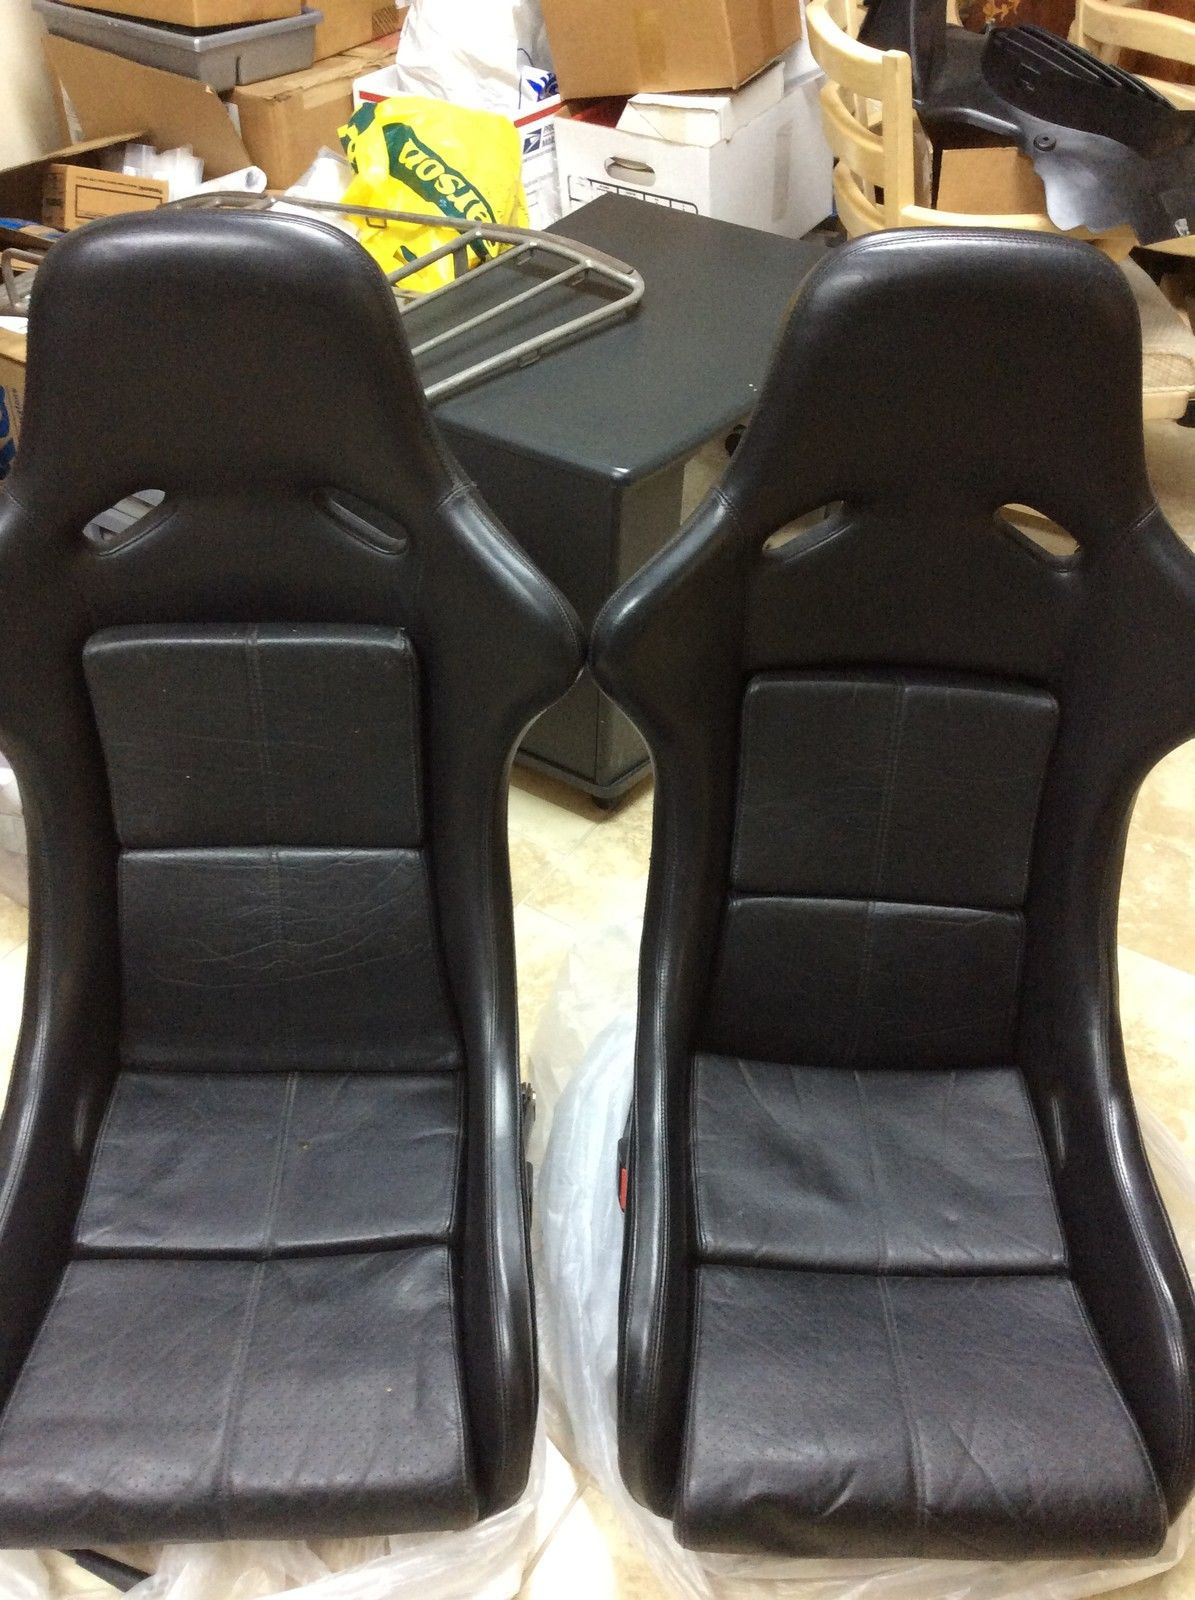 Seats Showcase Recaro Oem Hardback Bucket Sport Shells